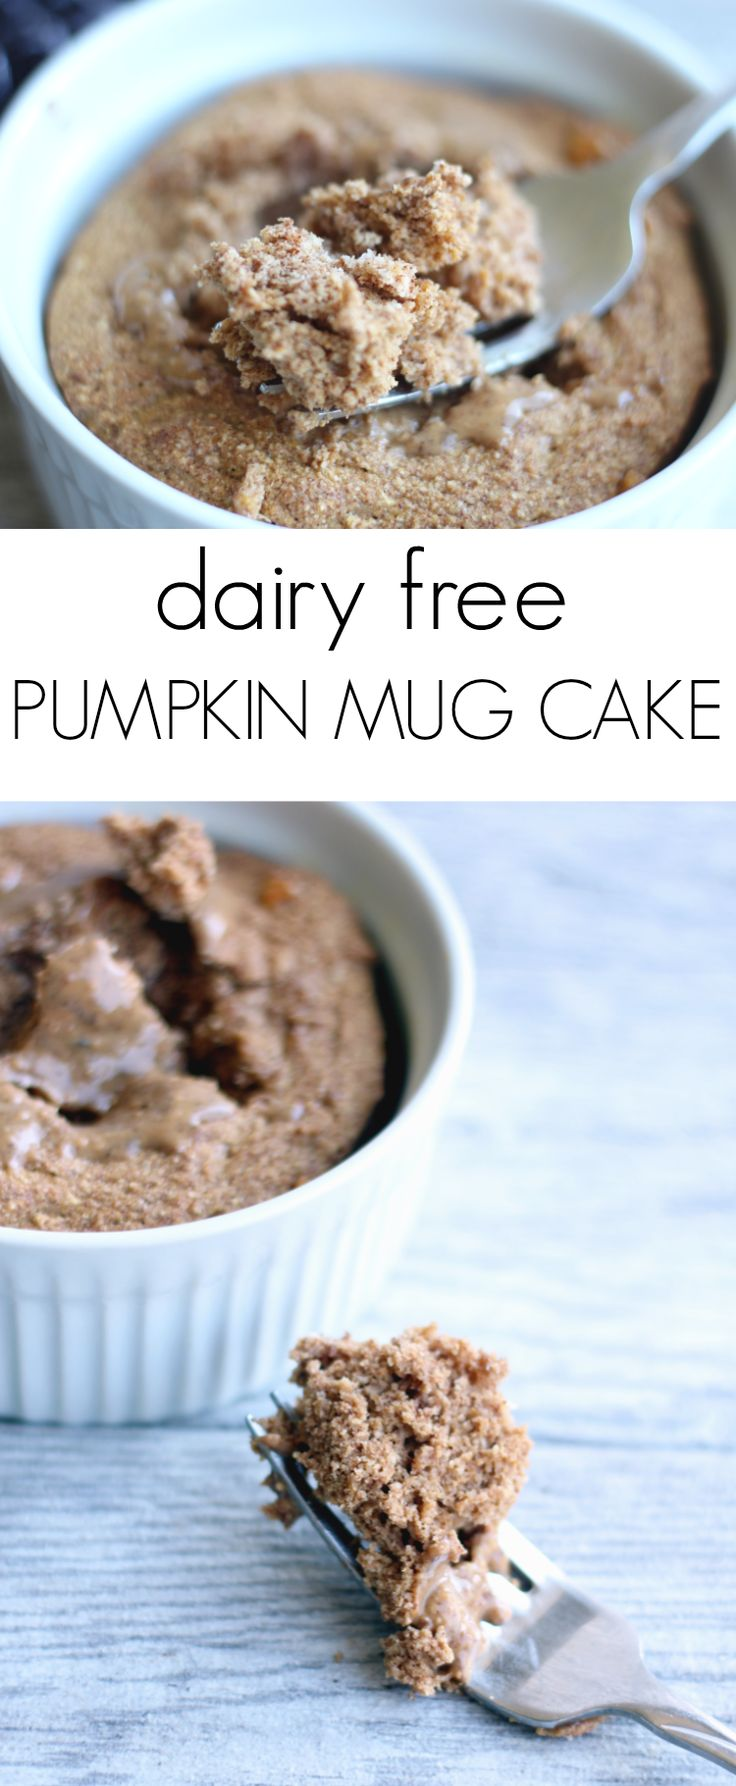 Easy Pumpkin Mug Cake